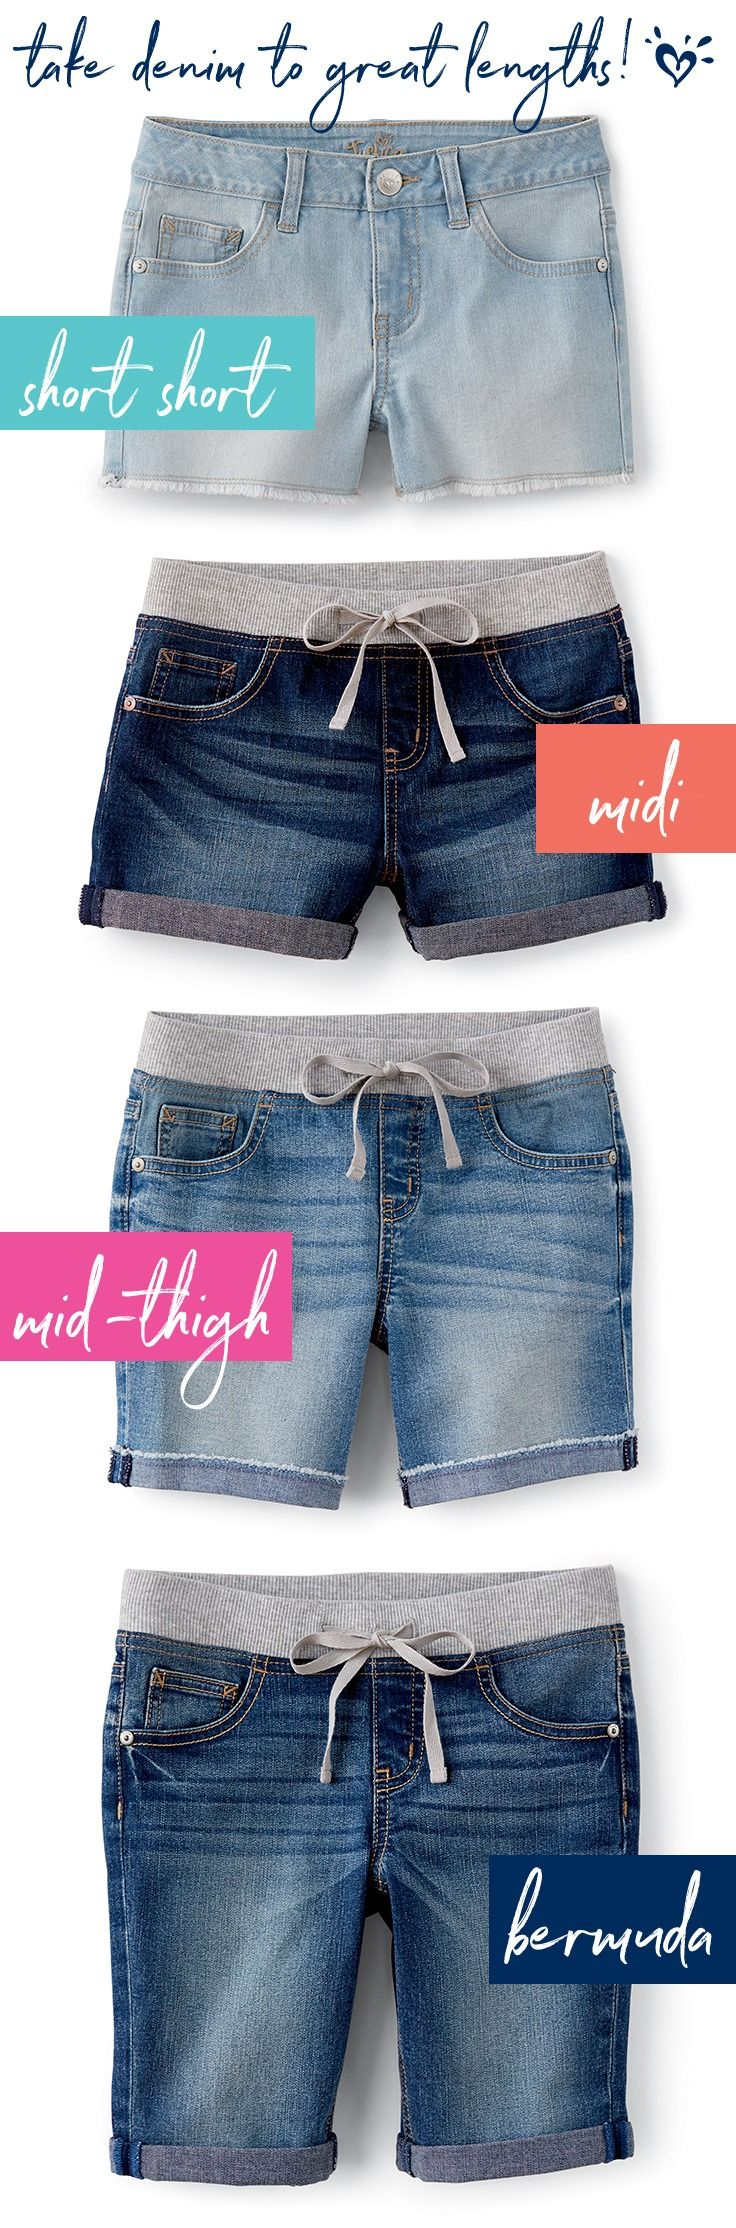 Soak up the summer fun in four awesome lengths in denim shorts.